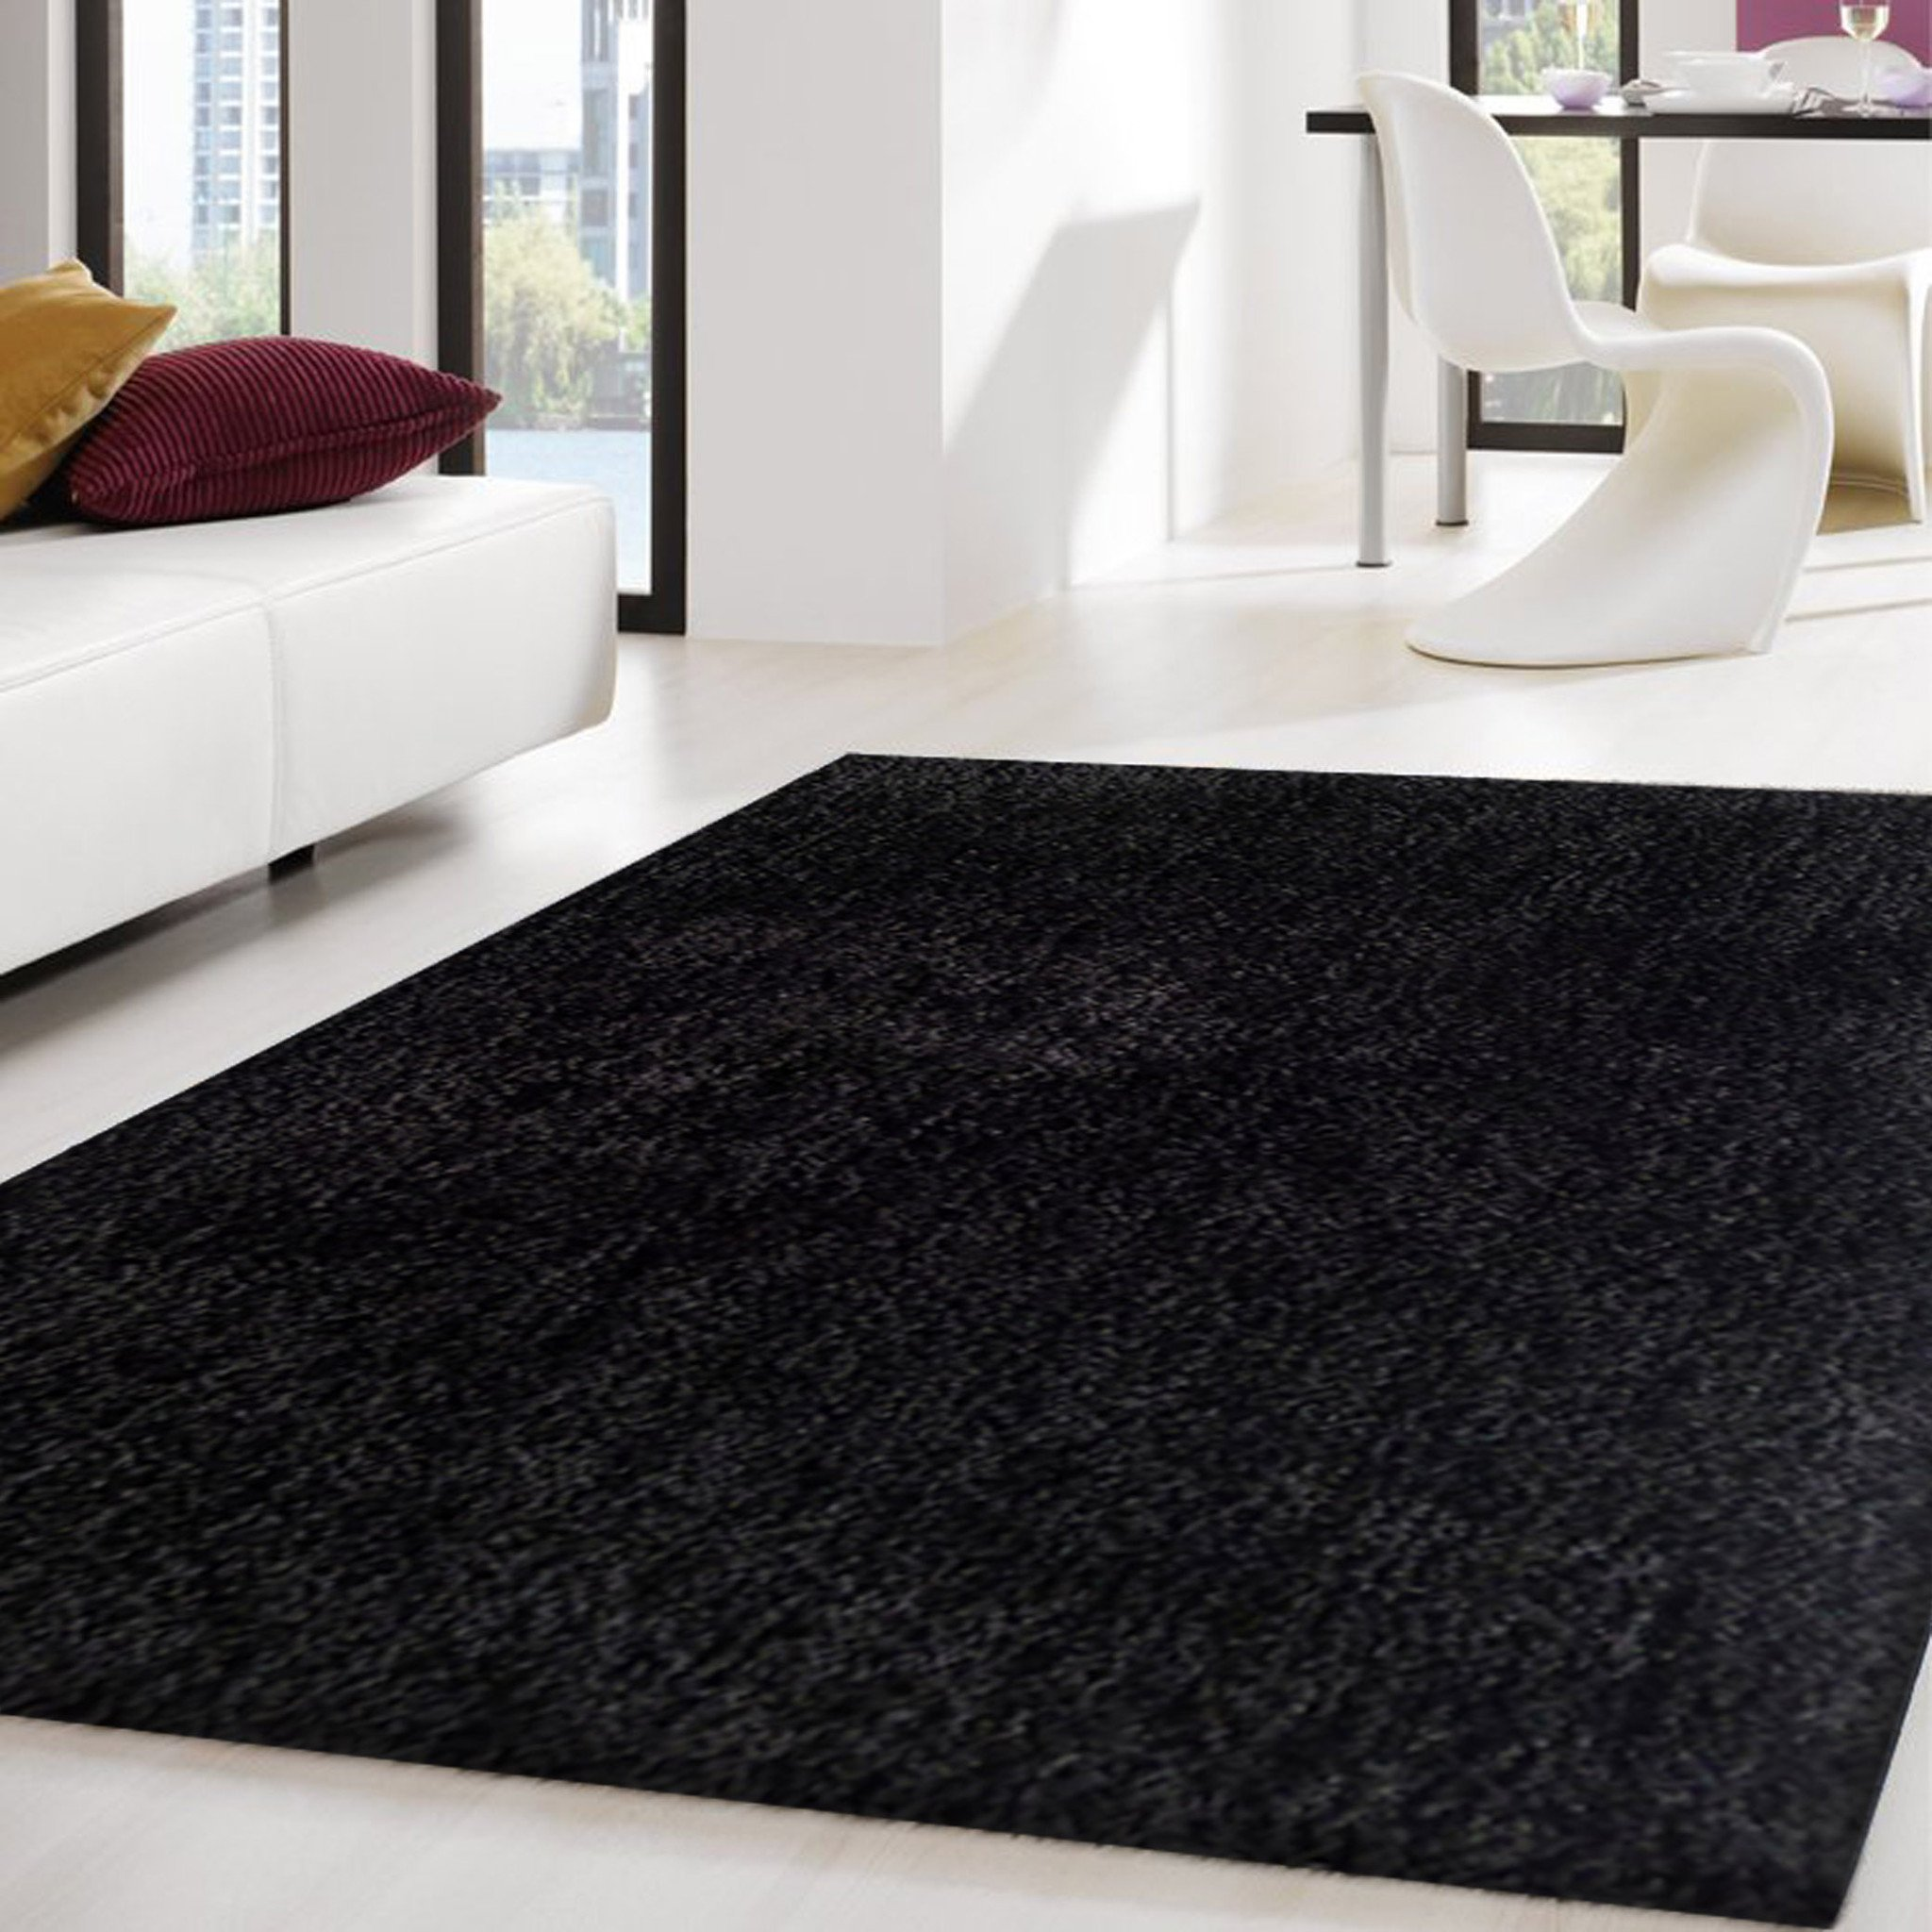 black rugs 2-piece set | solid black thick plush shag area rug with rug pad RULFINH